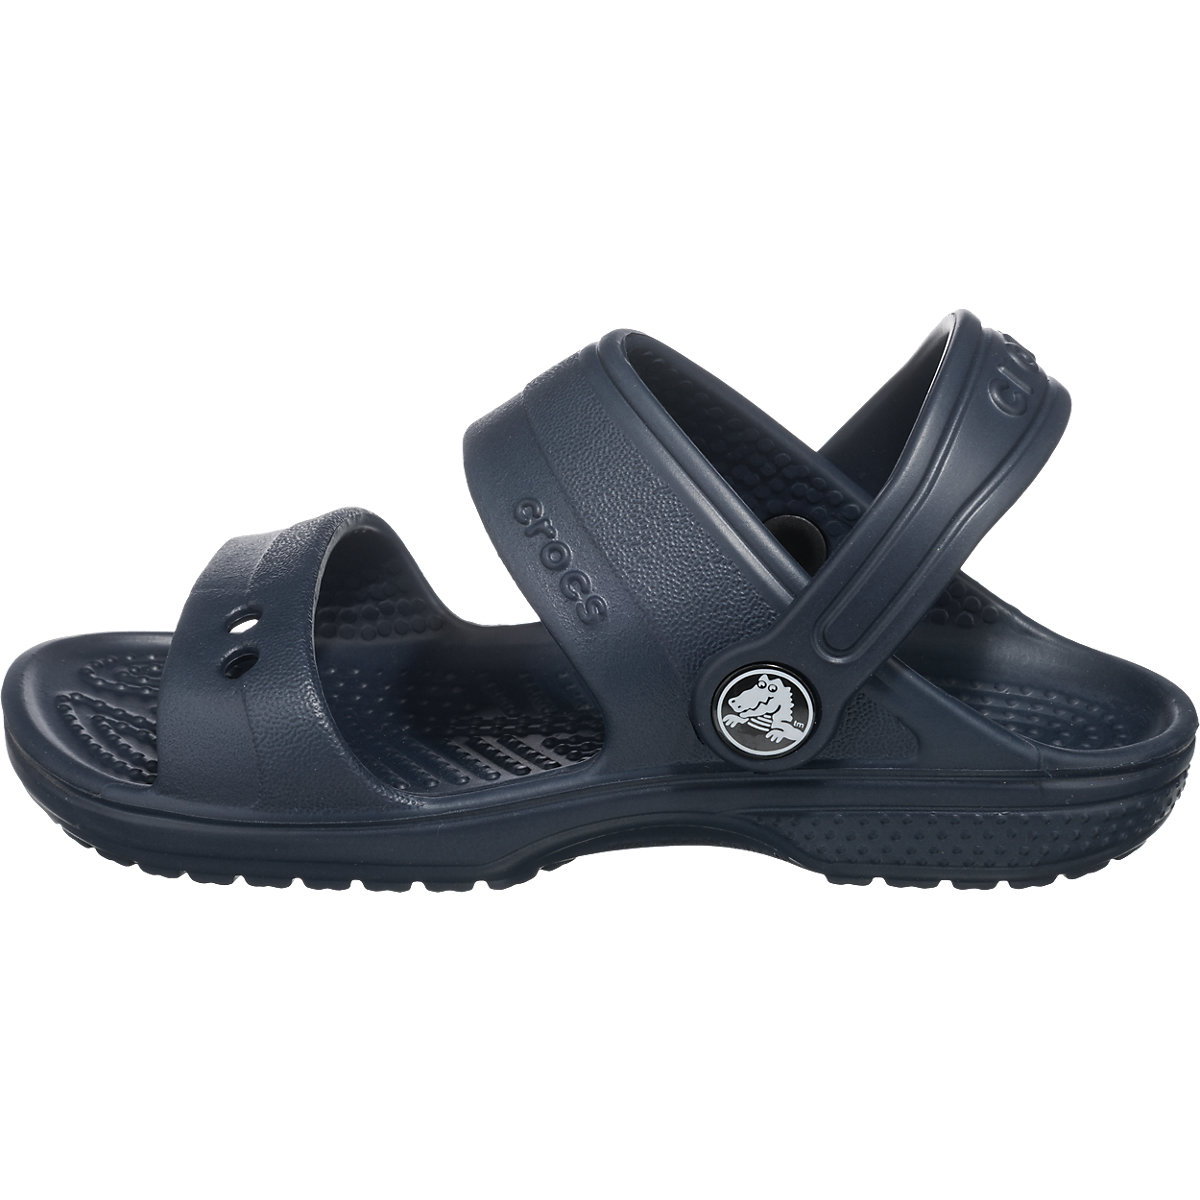 crocs kinder sandalen classic blau mirapodo. Black Bedroom Furniture Sets. Home Design Ideas